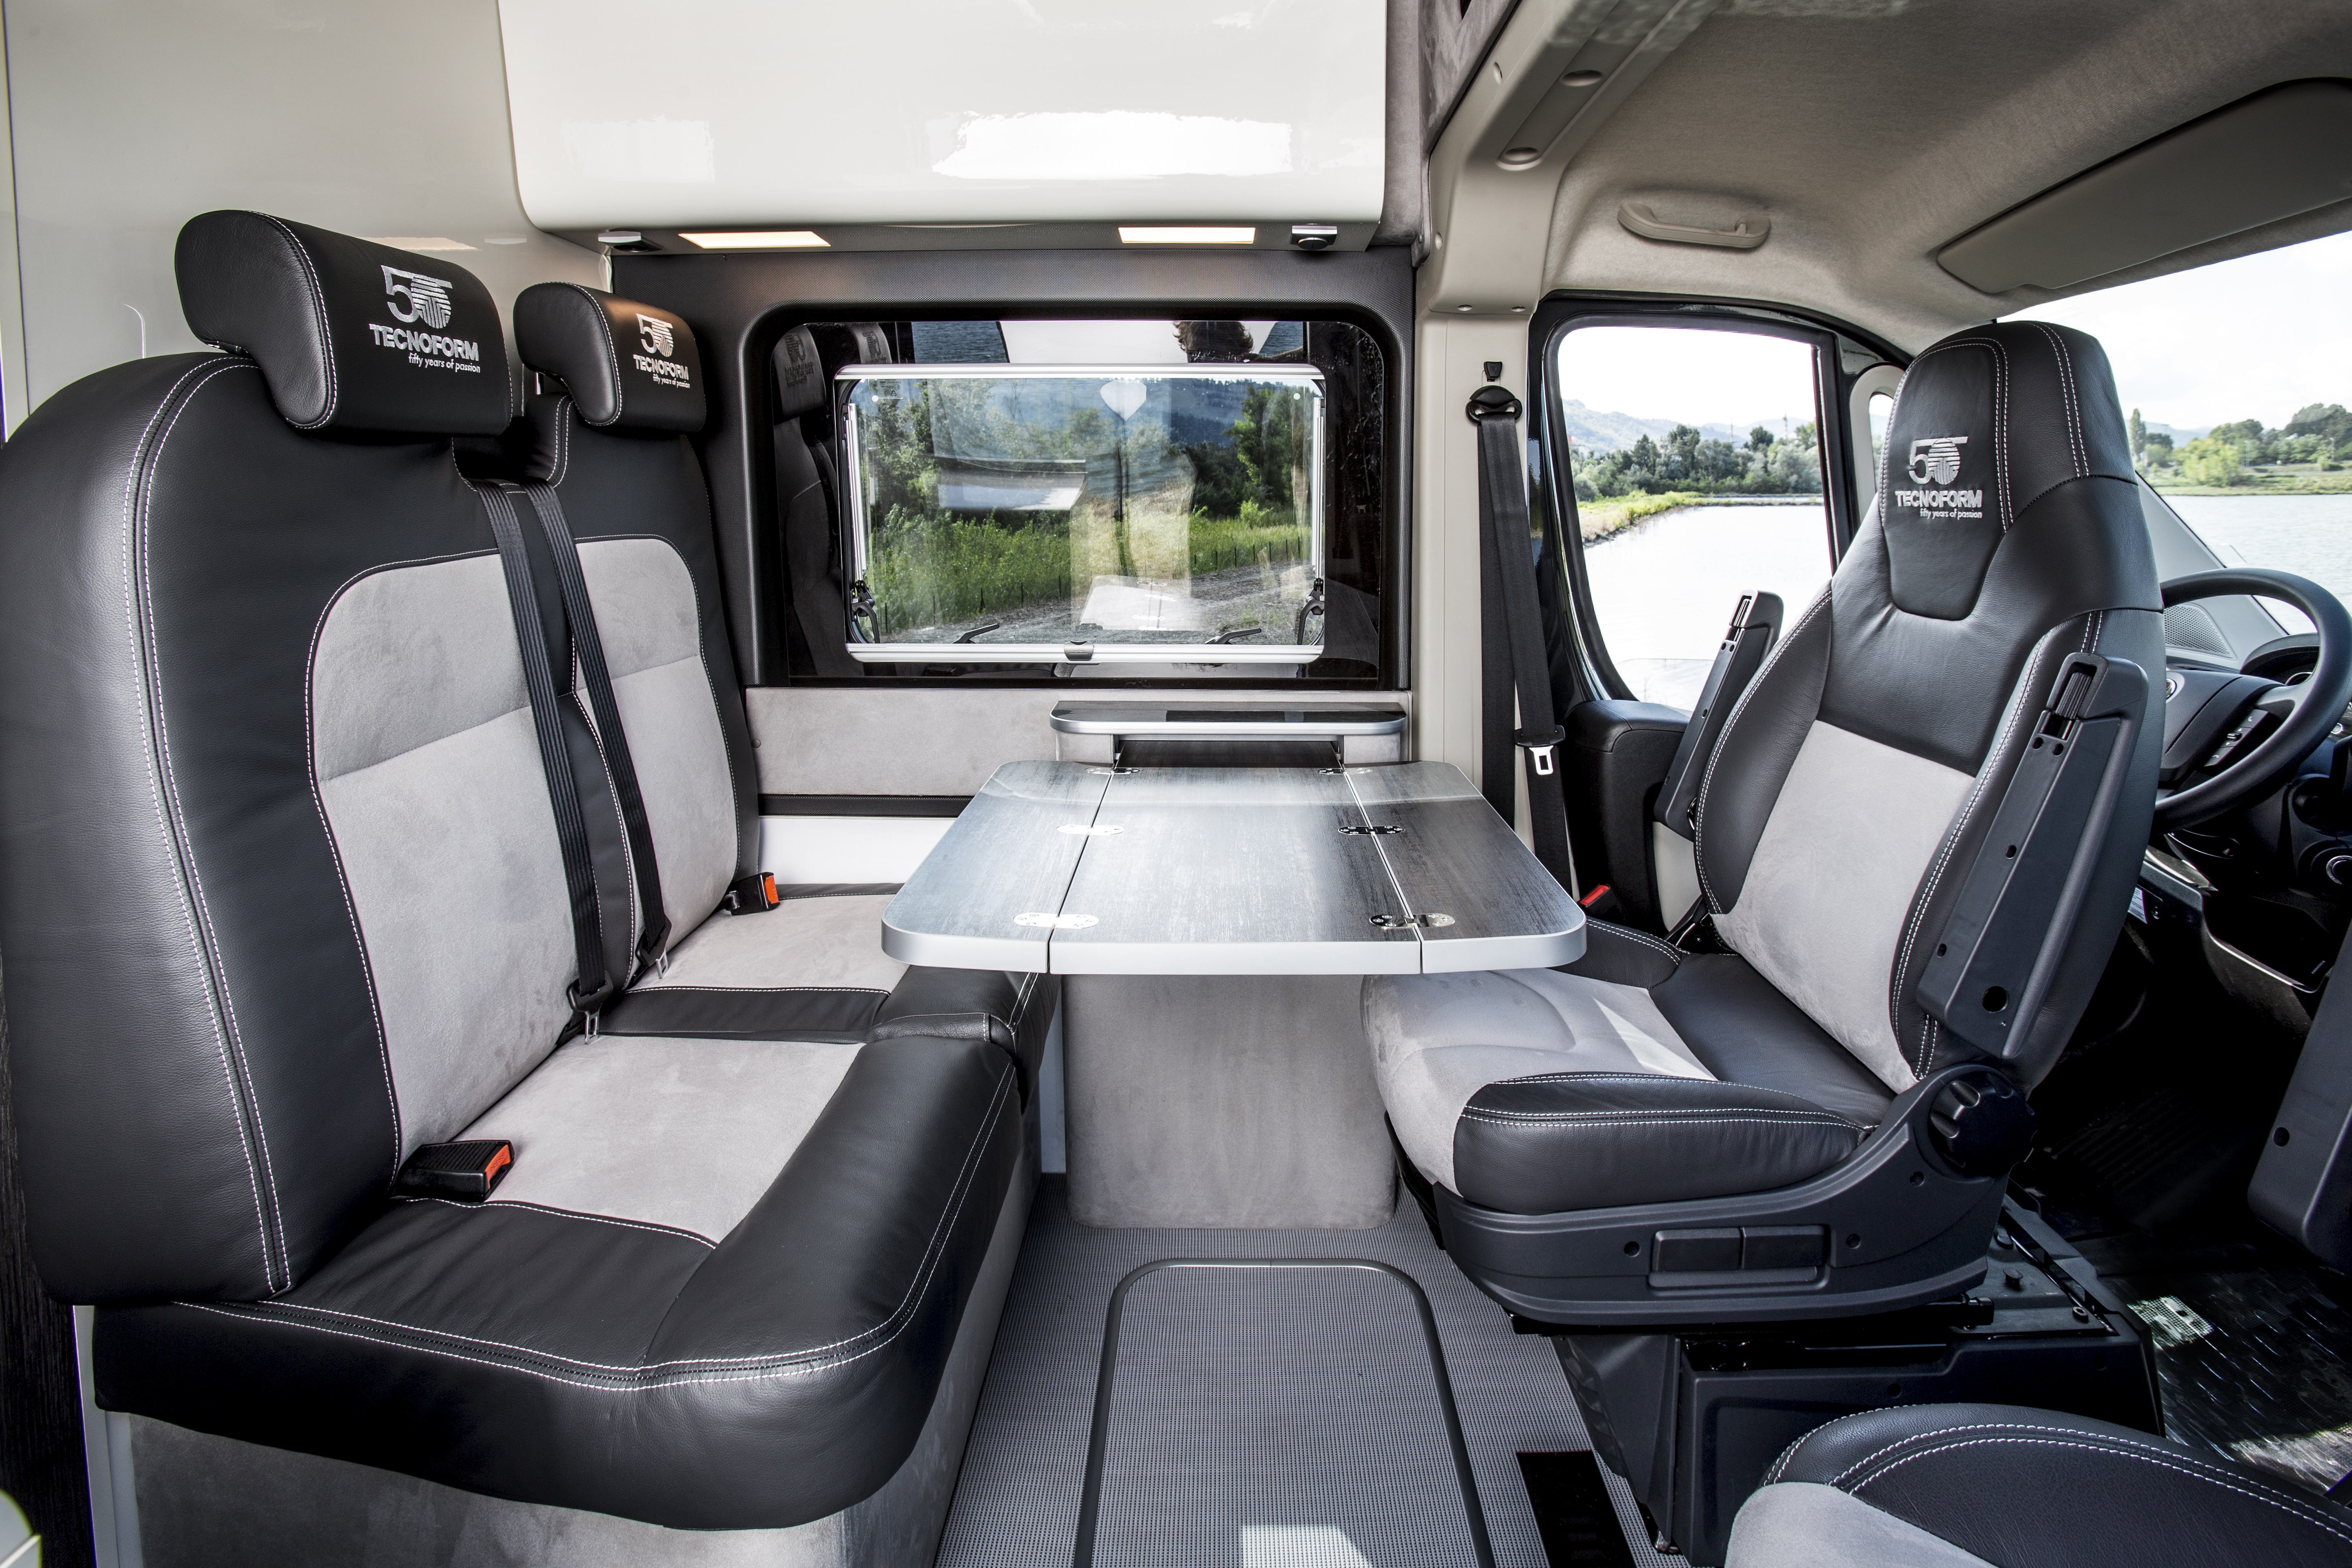 press images the apmp ducato fp inaugural car article its awards professional names year motoring association and in fiat van new of